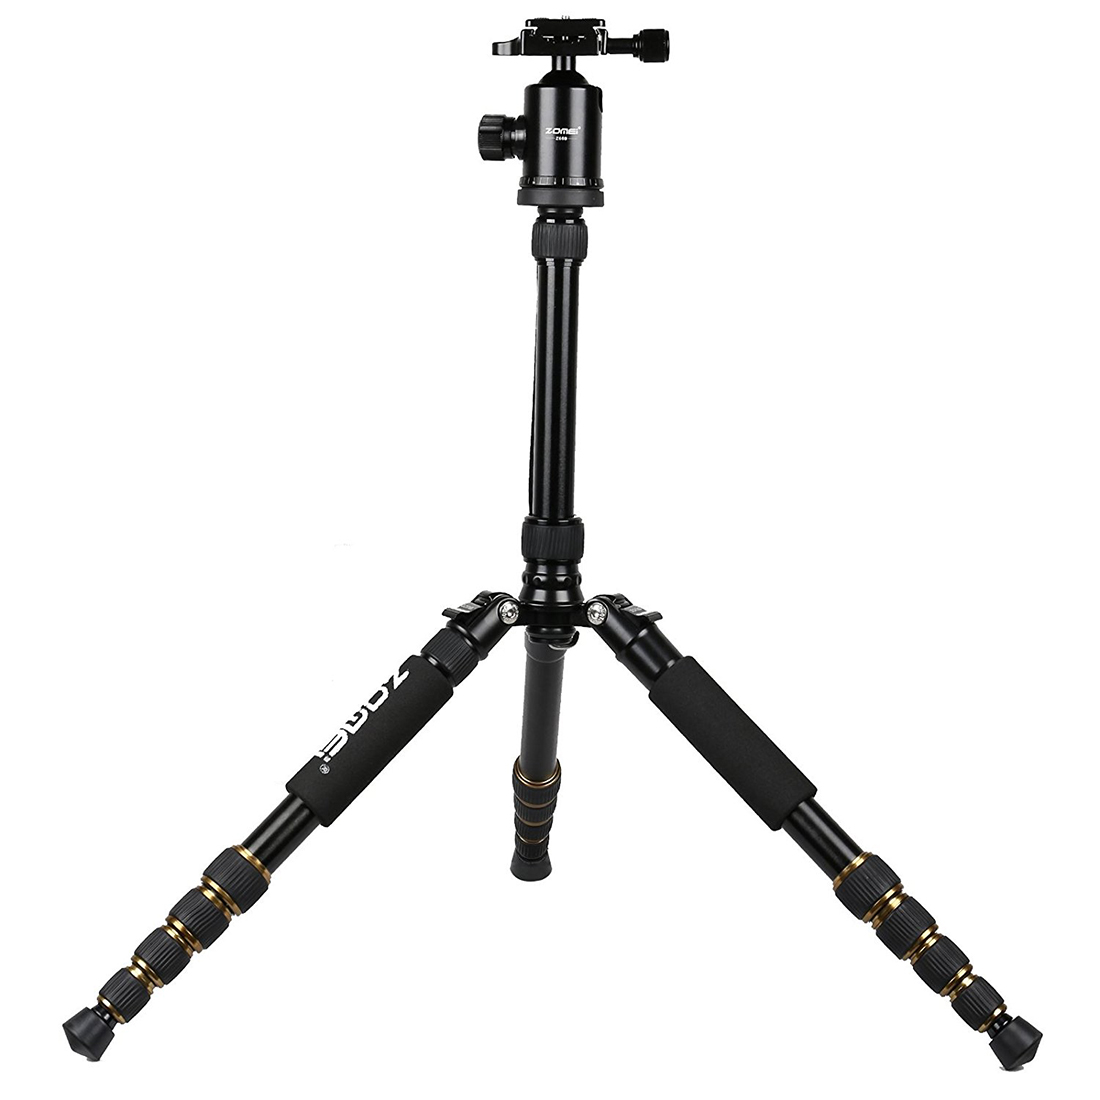 MAHA Hot ZOMEI Z699 Magnesium Aluminum Alloy SLR Three Tripod with Ball Head Pocket Travel for DSLR zomei professional aluminum alloy slr three camera folding portable tripod with ball head bag travel for dslr black q111